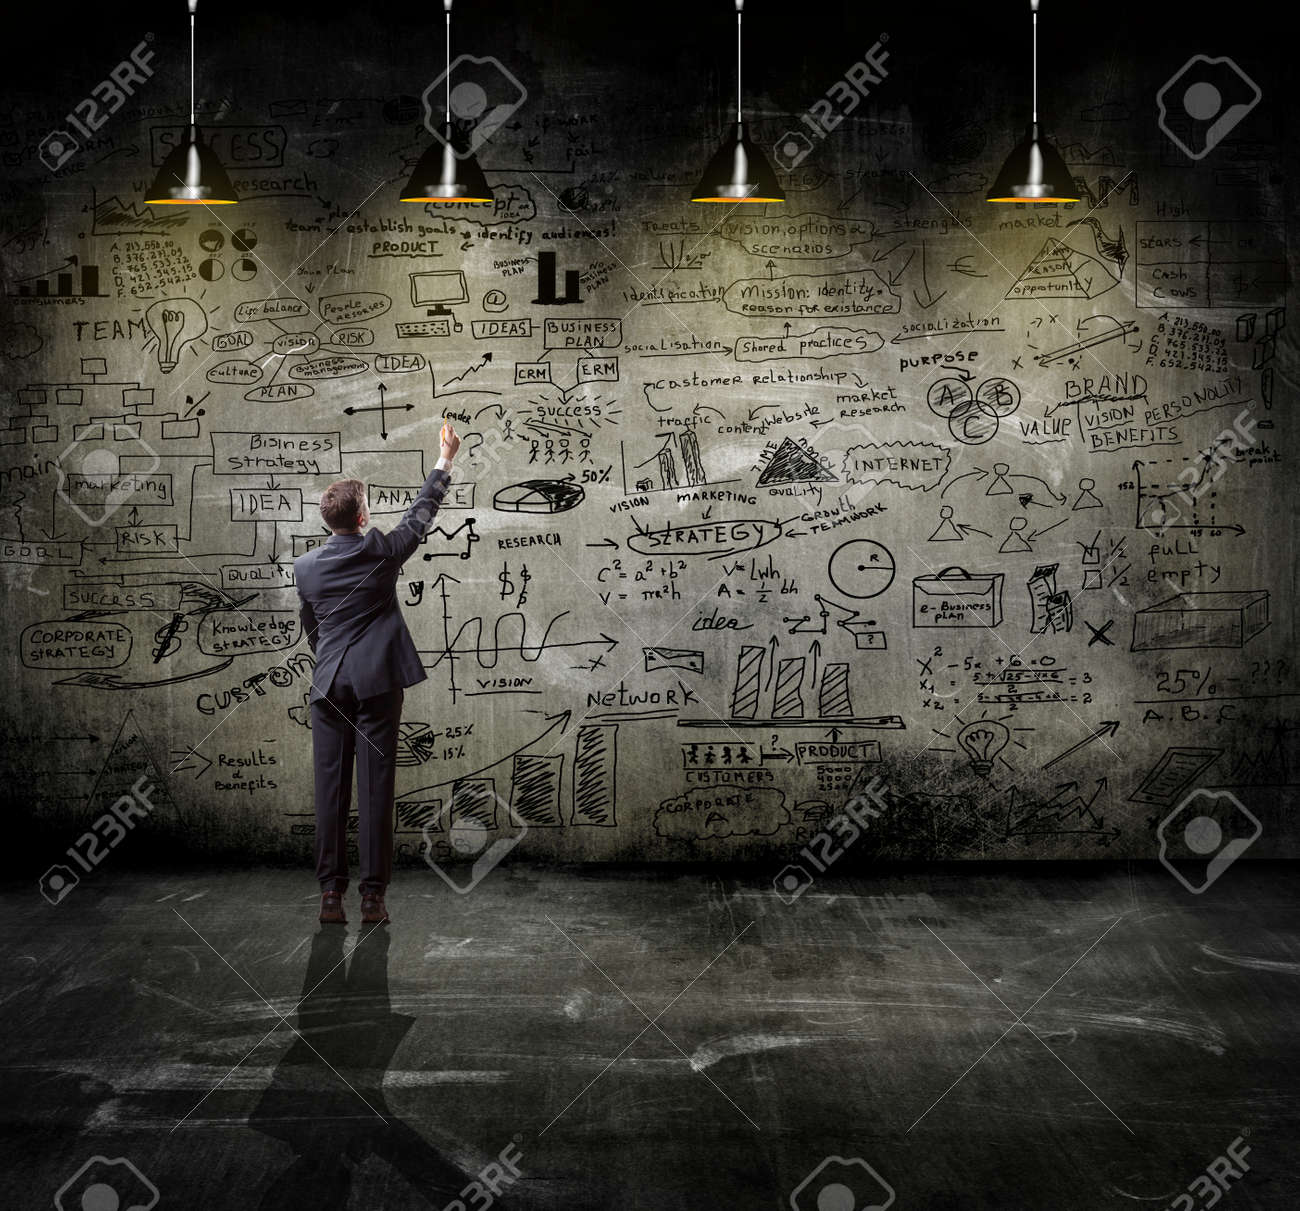 business strategy on the wall with lamp - 41330281